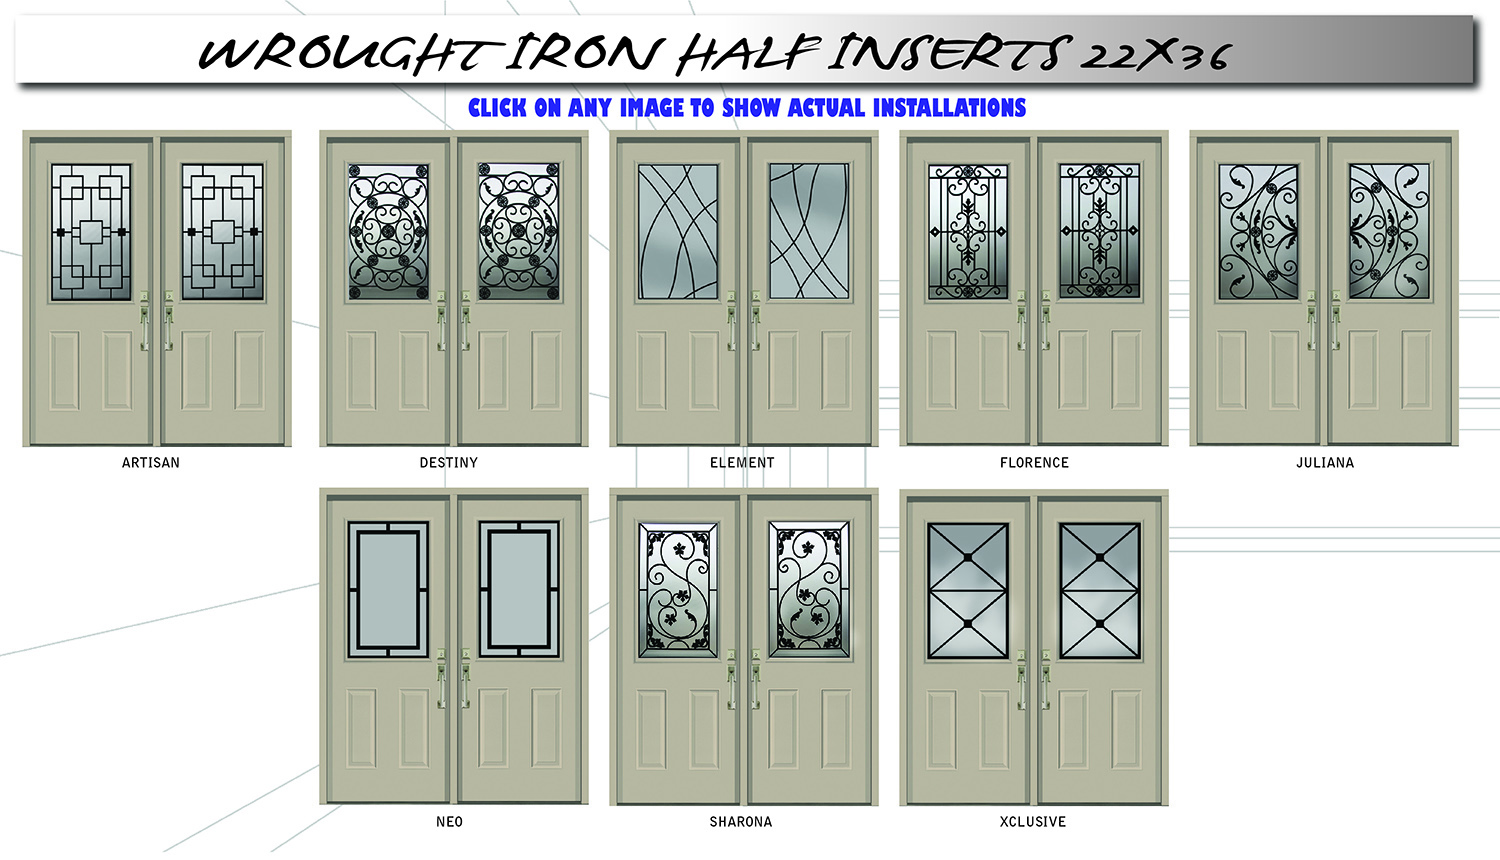 Wrought Iron Half Door 2020